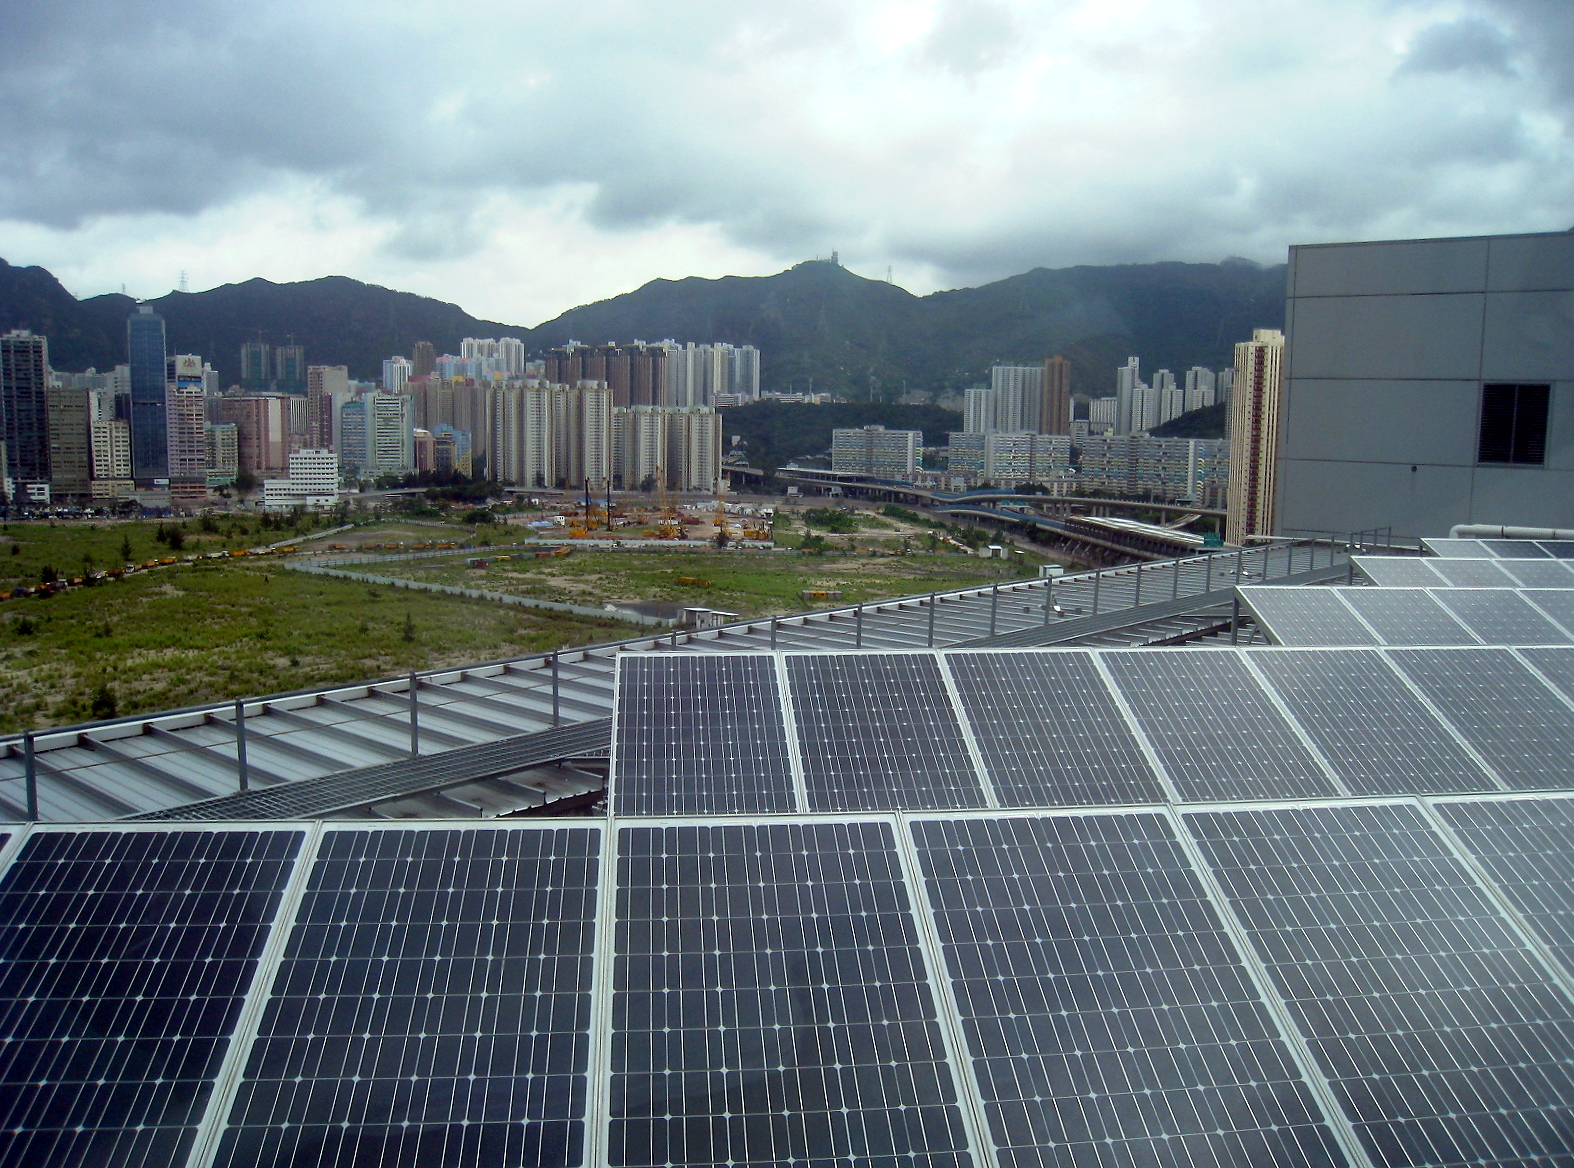 Electrical_and_Mechanical_Services_Department_Headquarters_Photovoltaics.jpg